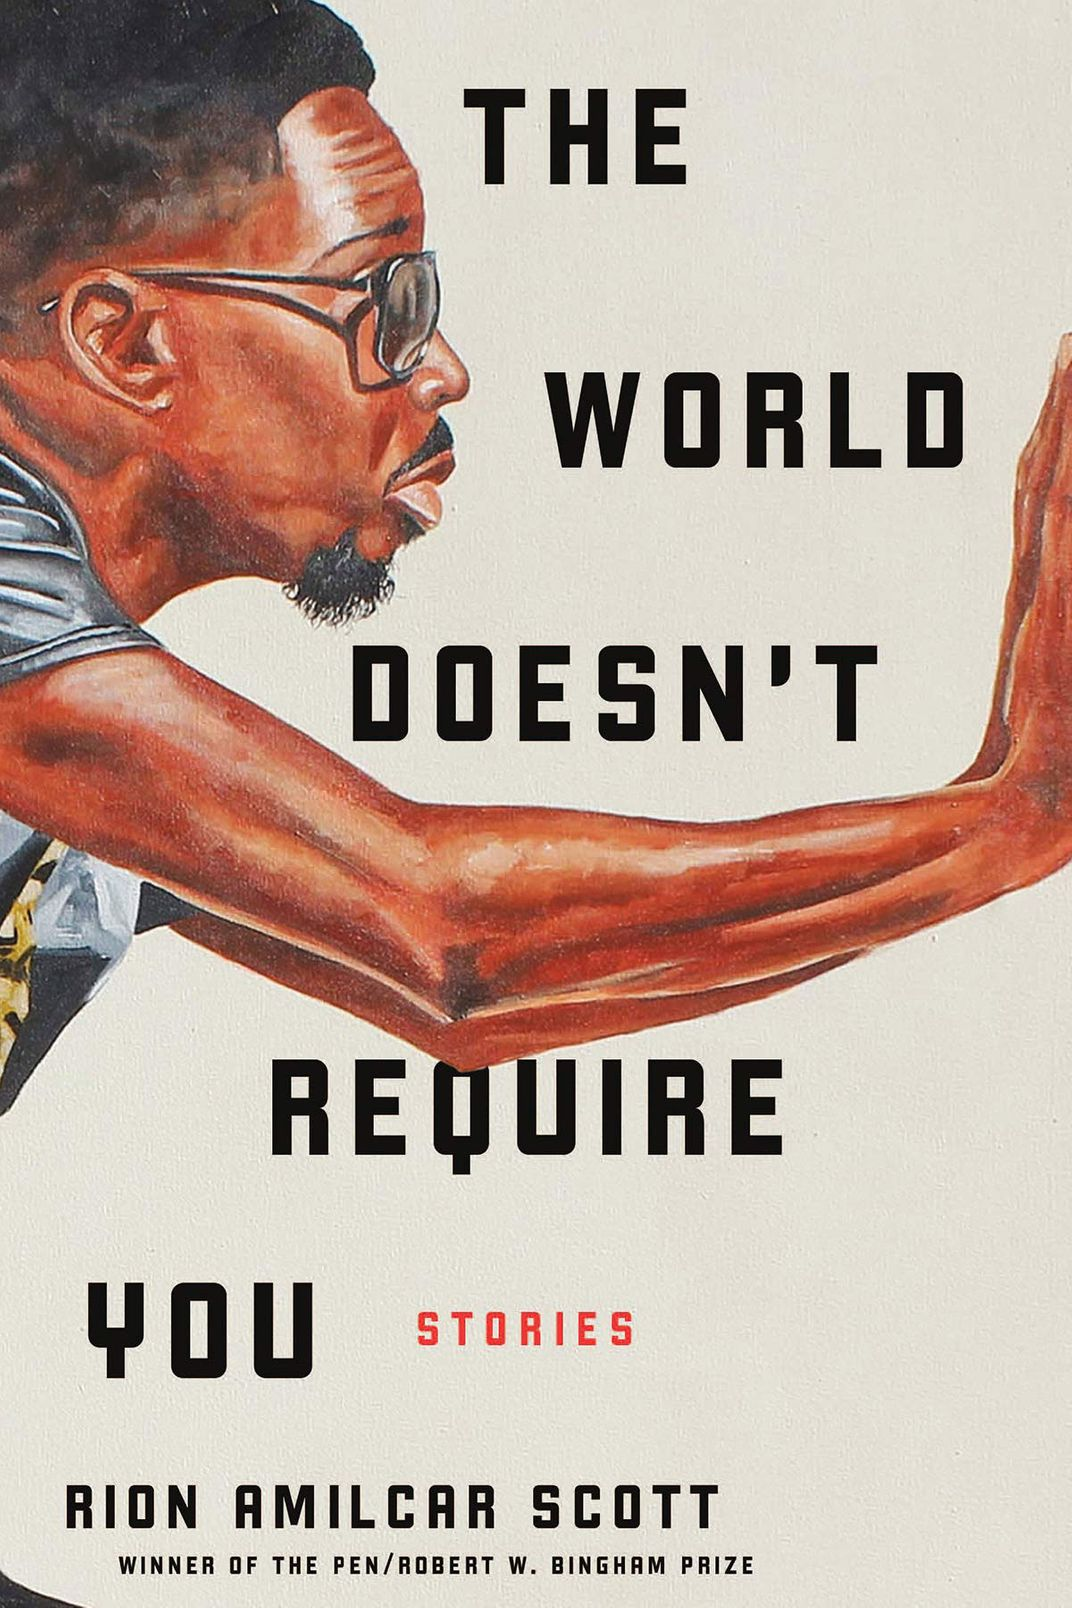 The World Doesn't Require You: Stories, by Rion Amilcar Scott (Liveright, August 20)